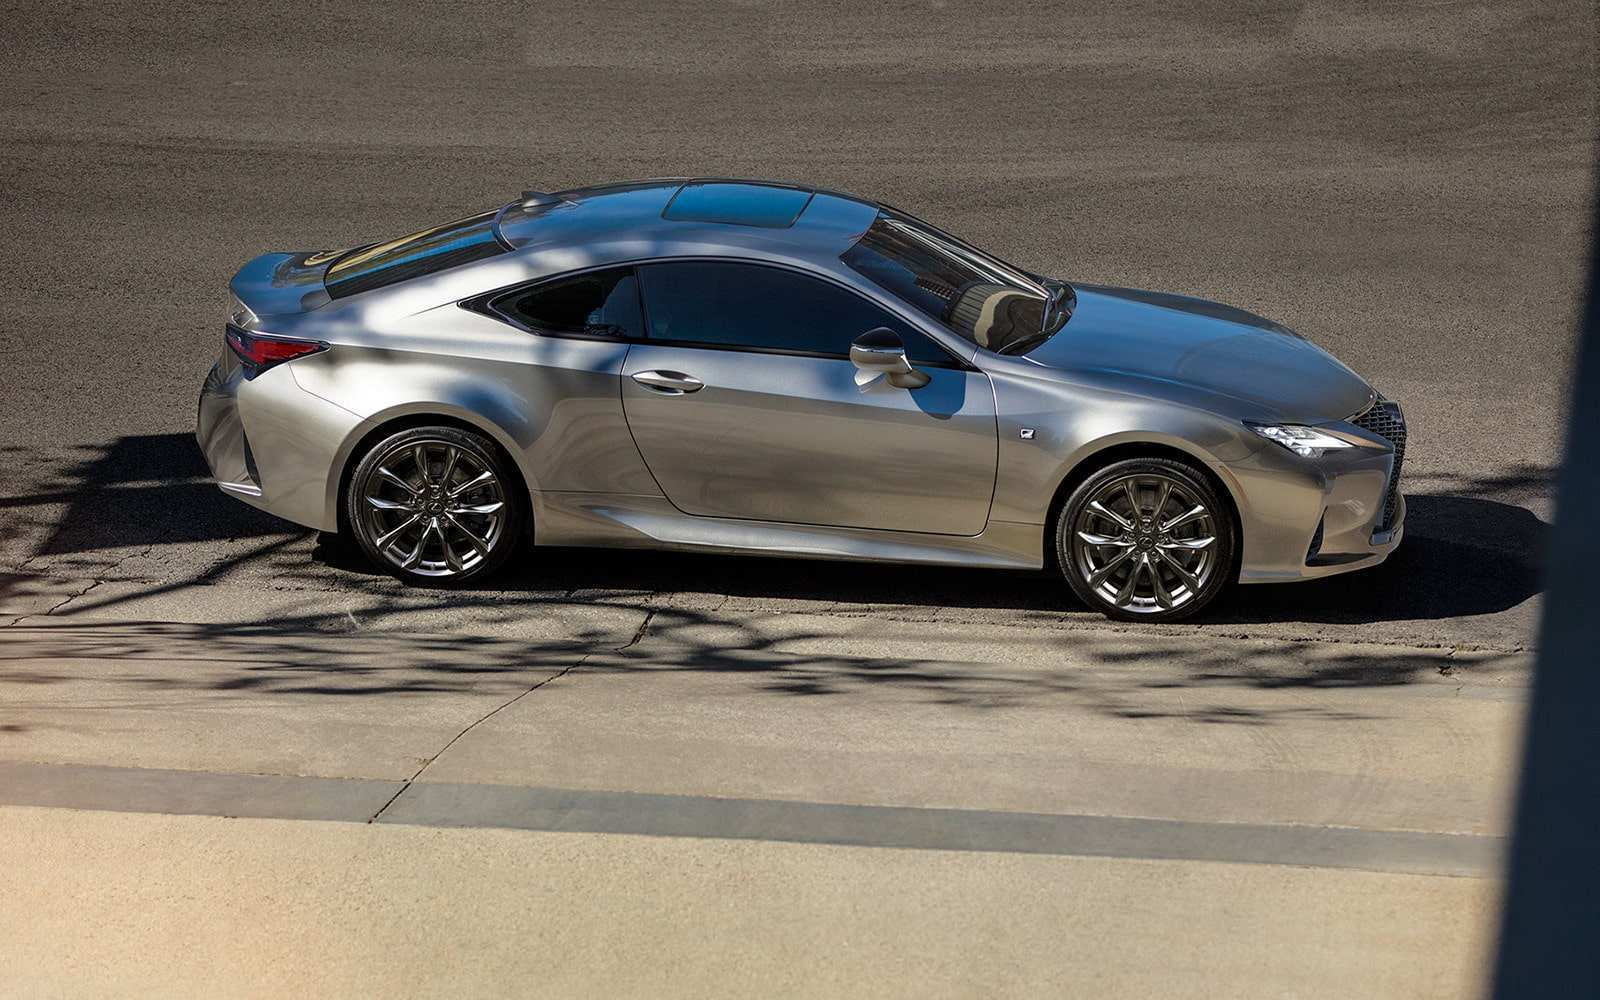 26 New 2019 Lexus Rc Exterior And Interior